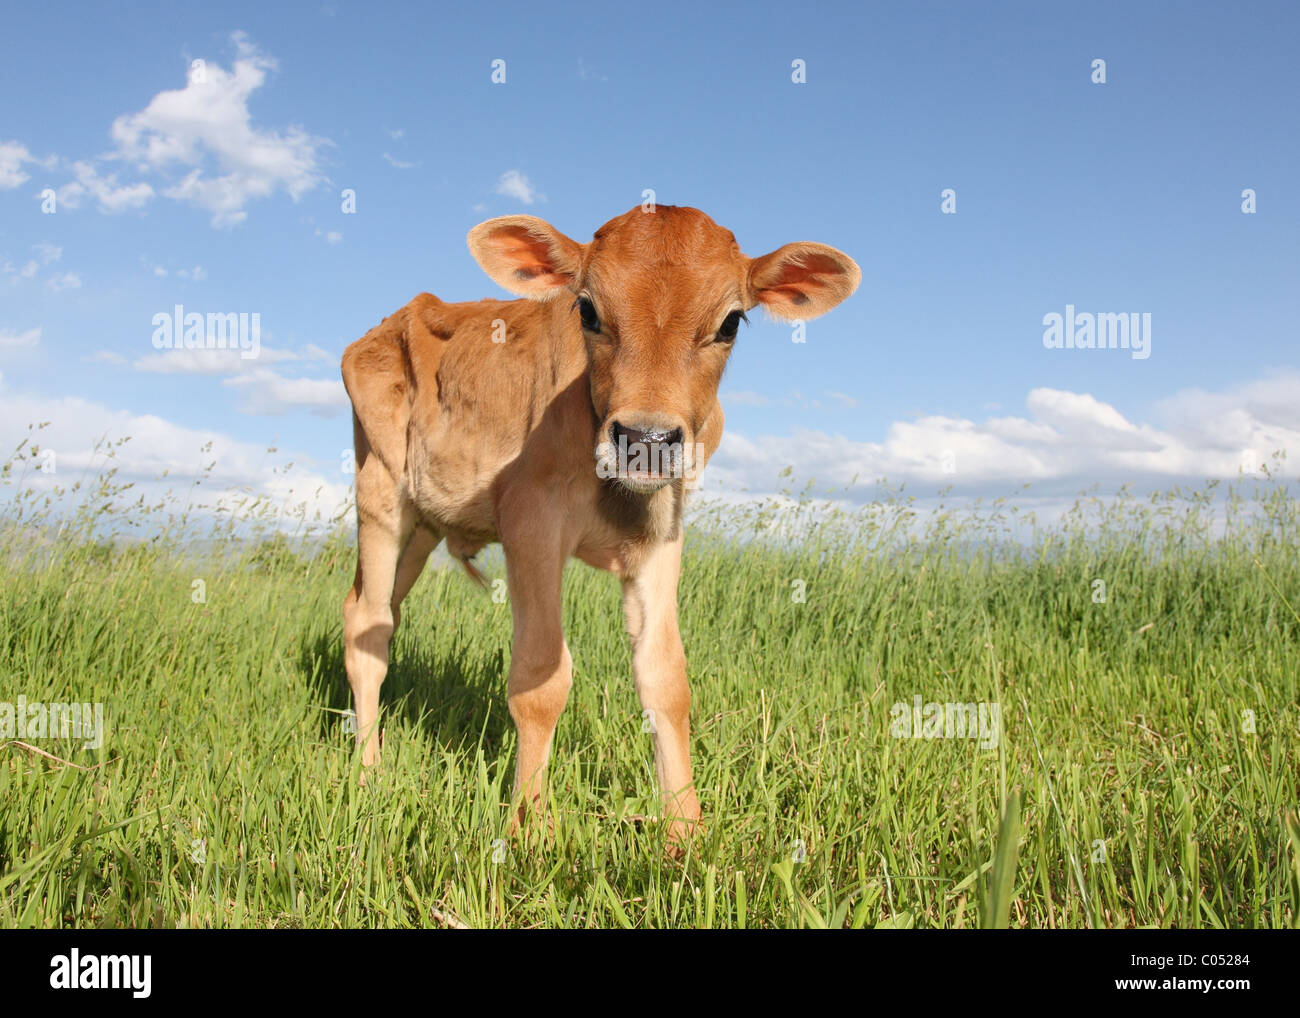 Skinny baby calf standing in field seul Photo Stock